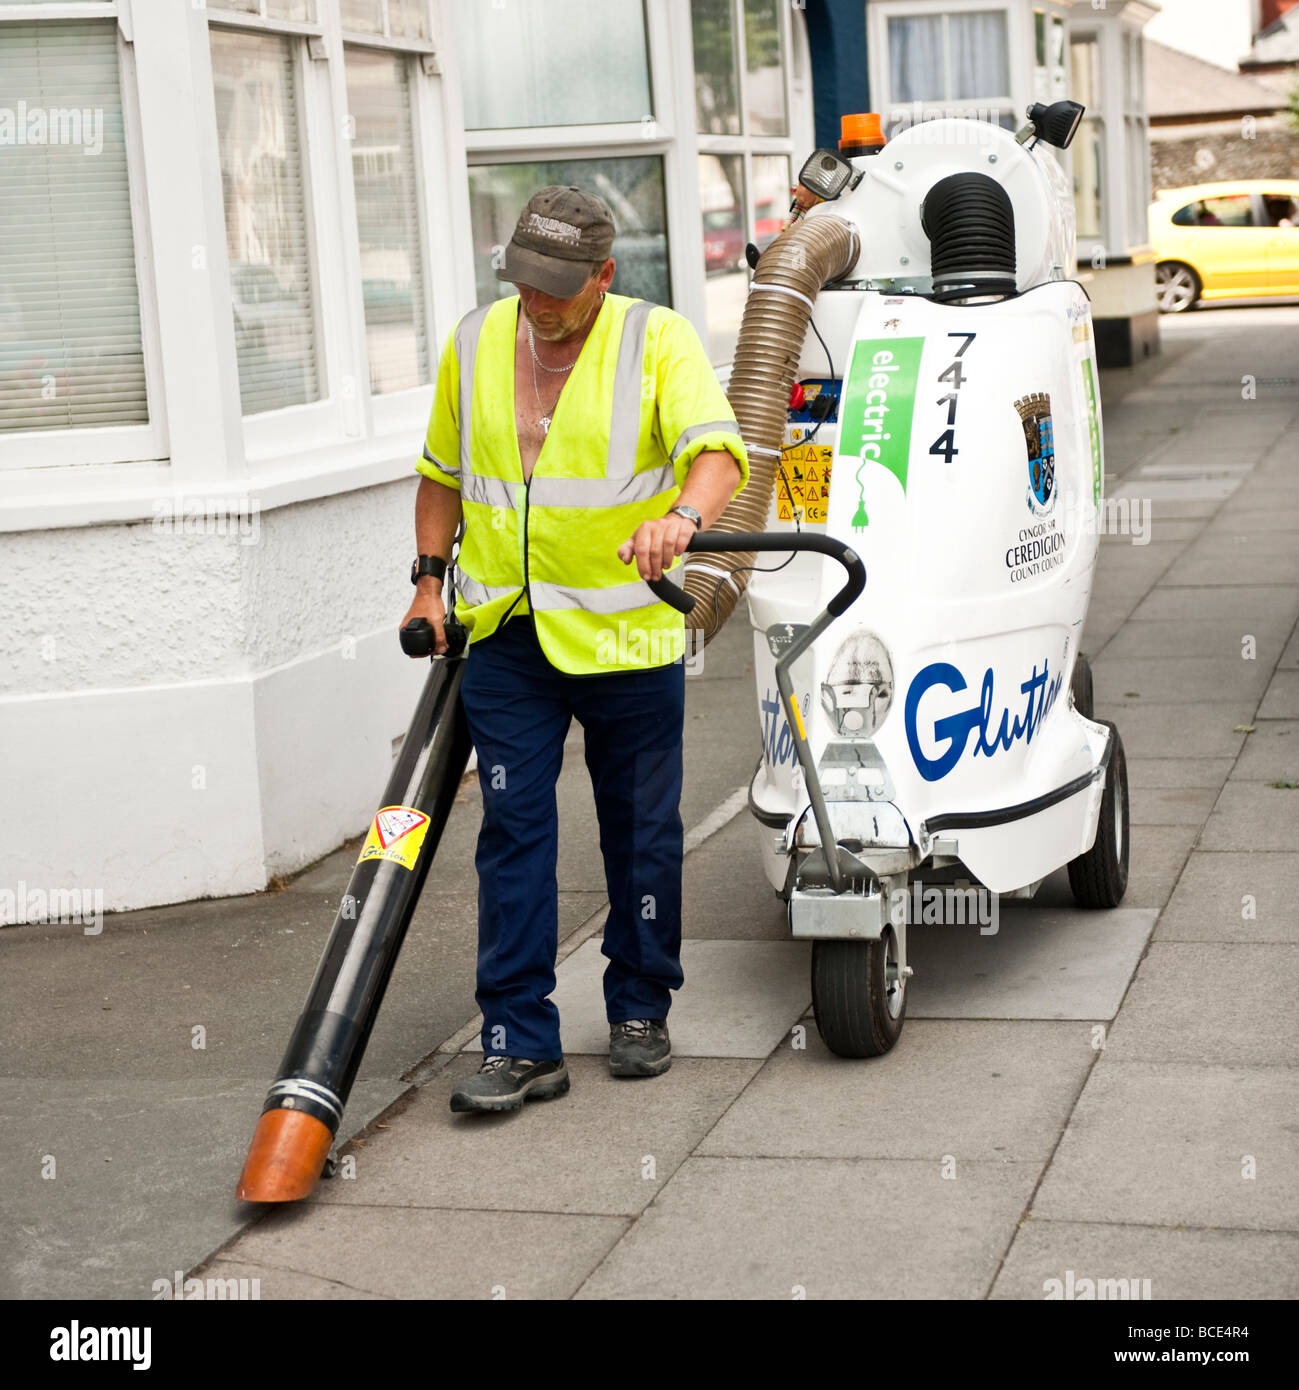 Local authority worker cleaning the streets using an electrical powered industrial scale Glutton vacuum cleaner - Stock Image